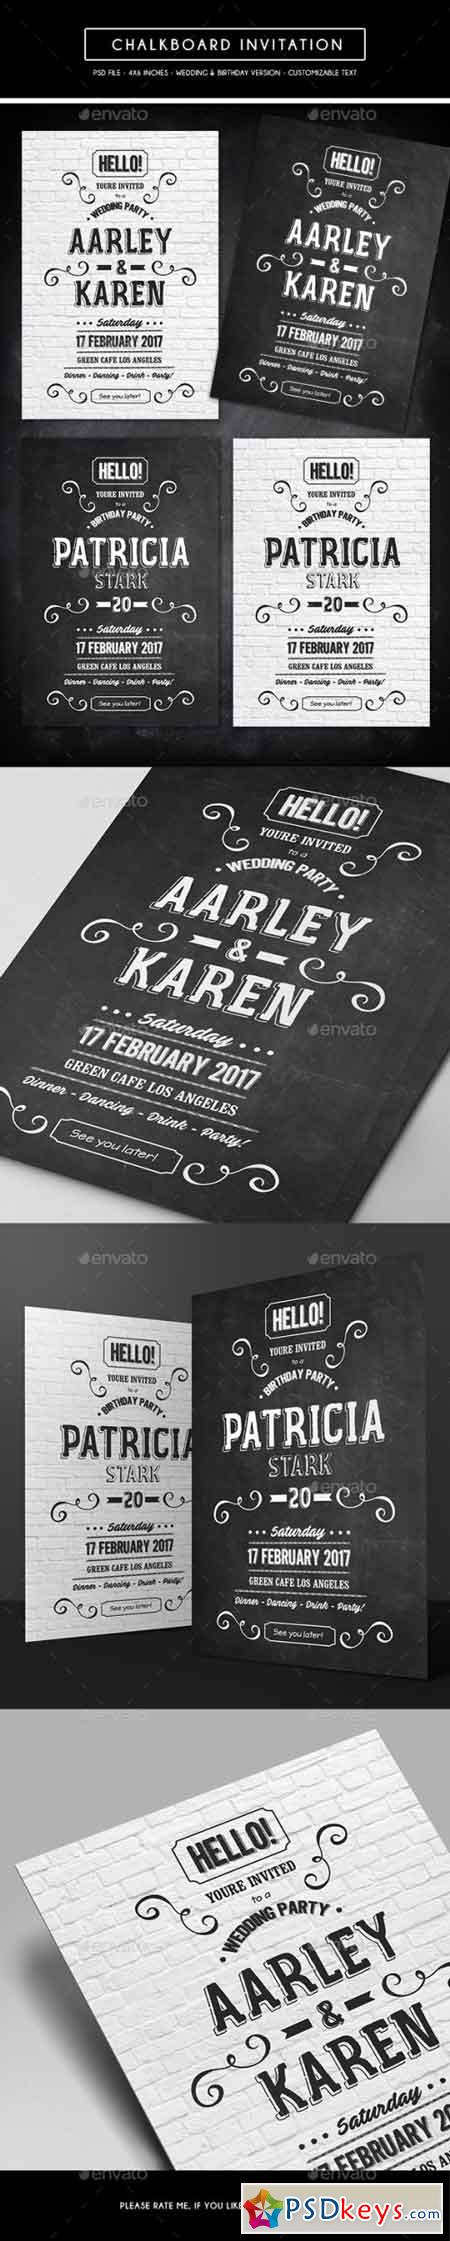 Chalkboard Invitation 15292314